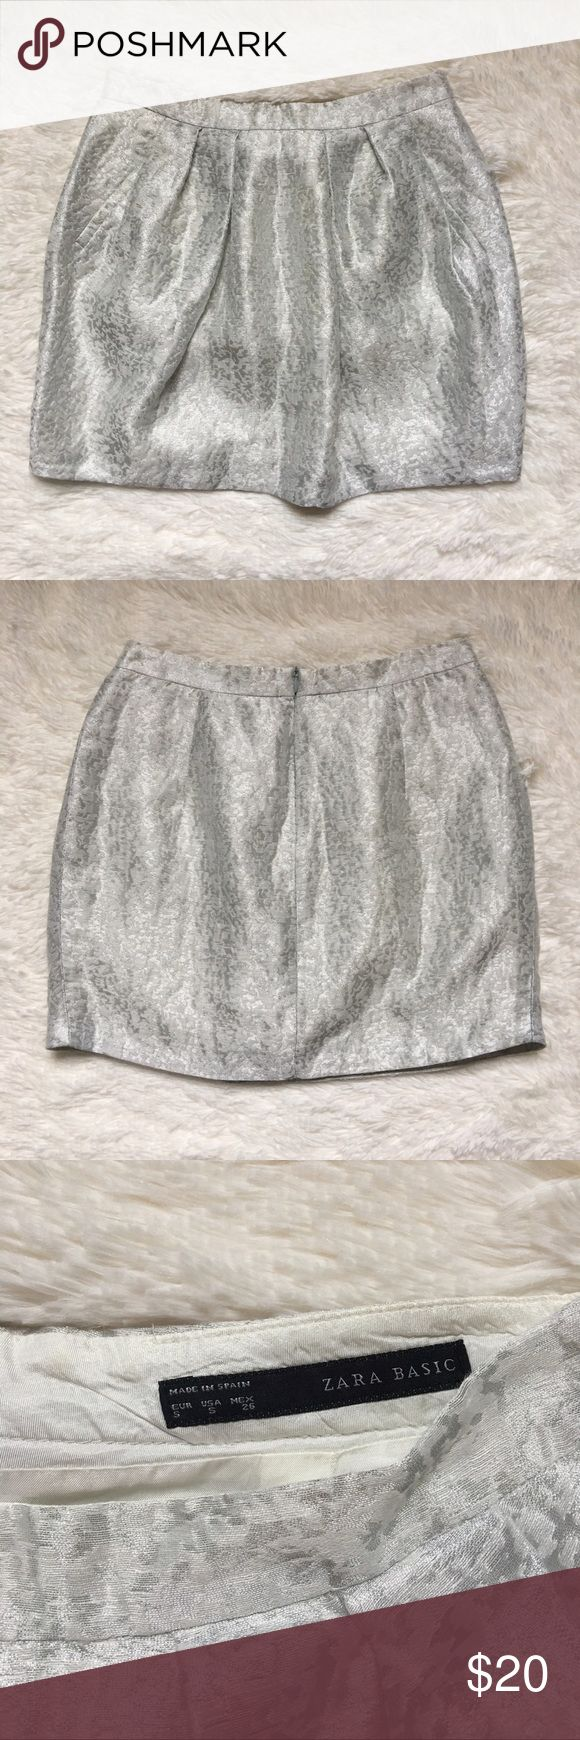 Zara mini skirt Zara mini skirt in size Small. No tears or rips. Great condition. Has the look of pockets in front but it's only for show. Zara Skirts Mini